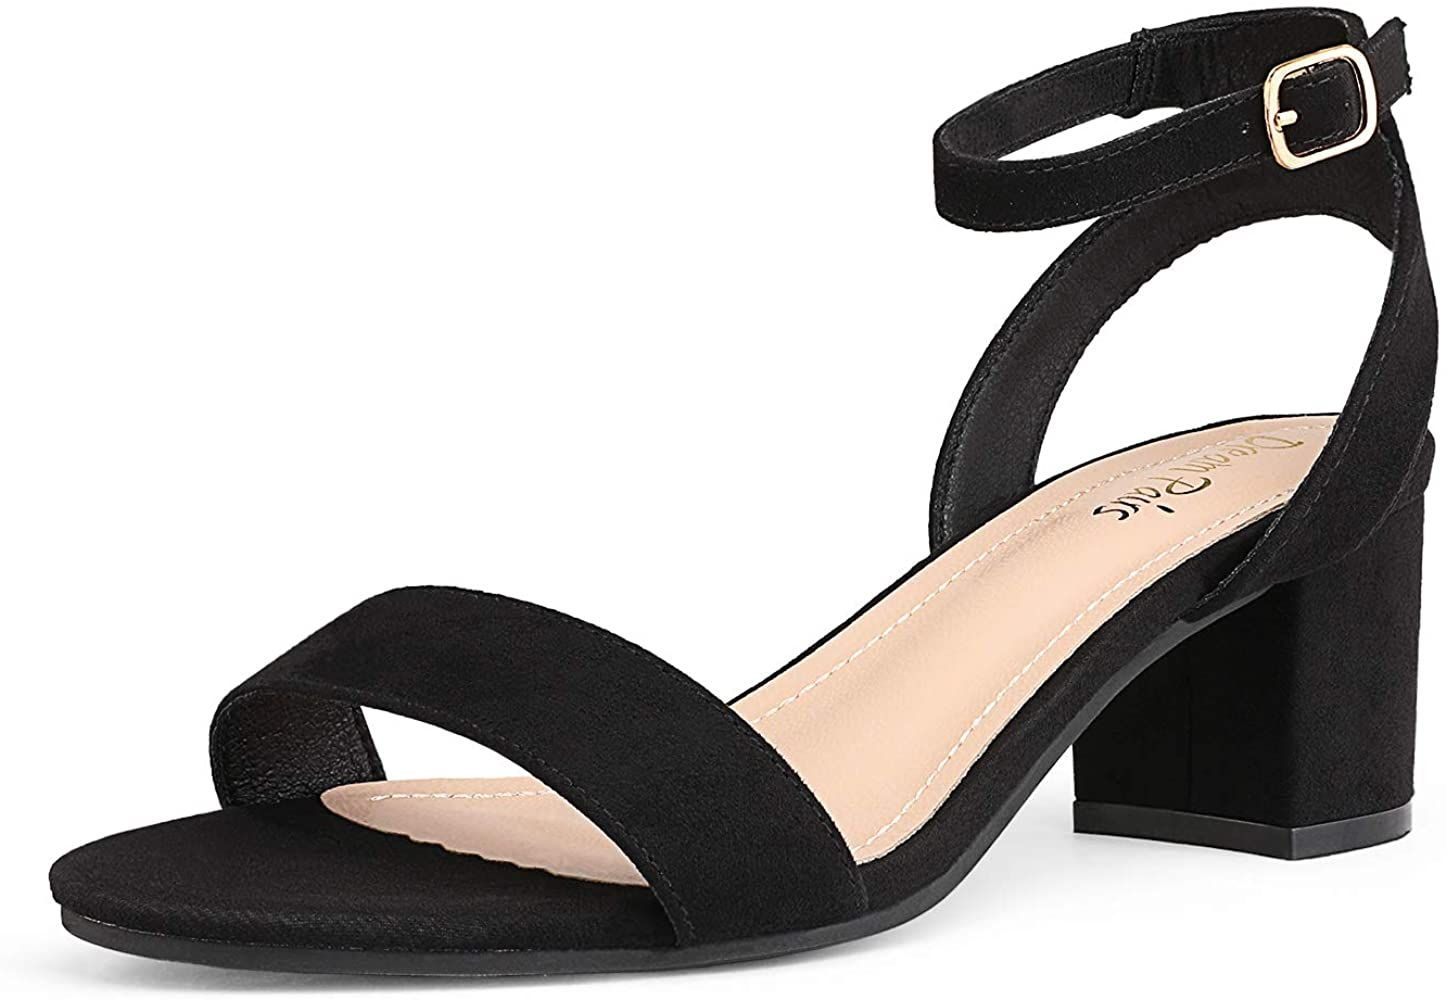 Amazon Com Dream Pairs Women S Black Sudede Open Toe Ankle Strap Low Block Chunky Heels Sandals Party Dress Pump Chunky Heels Sandals Pump Shoes Me Too Shoes [ 1000 x 1447 Pixel ]